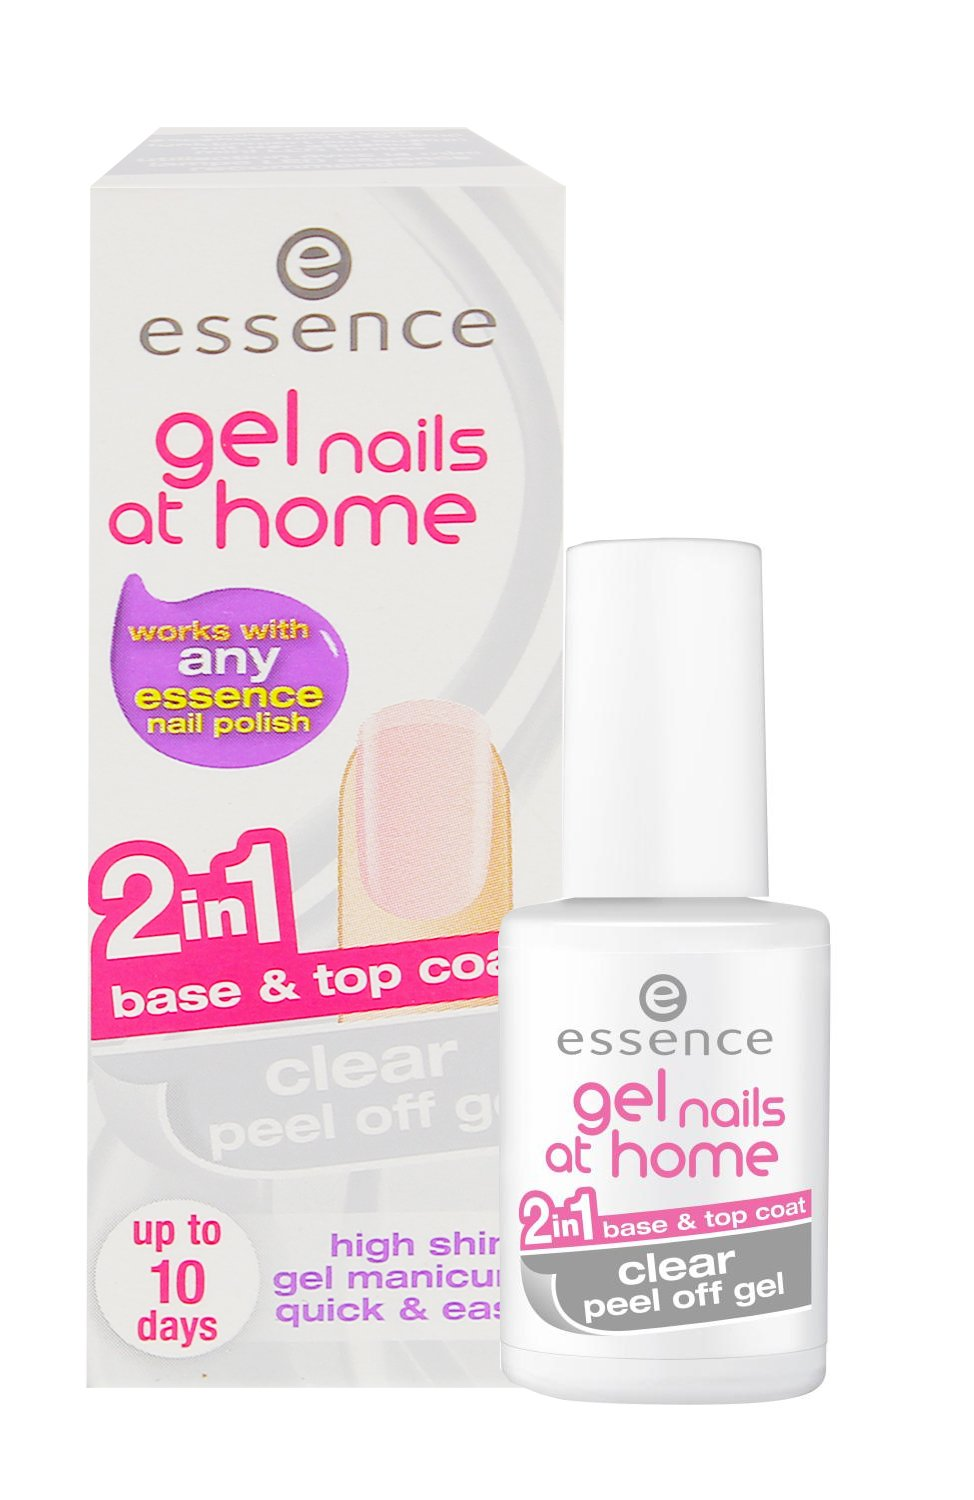 Essence Gel Nails At Home Clear Peel Off Gel 7ml 2In1 Base&Top Coat ...